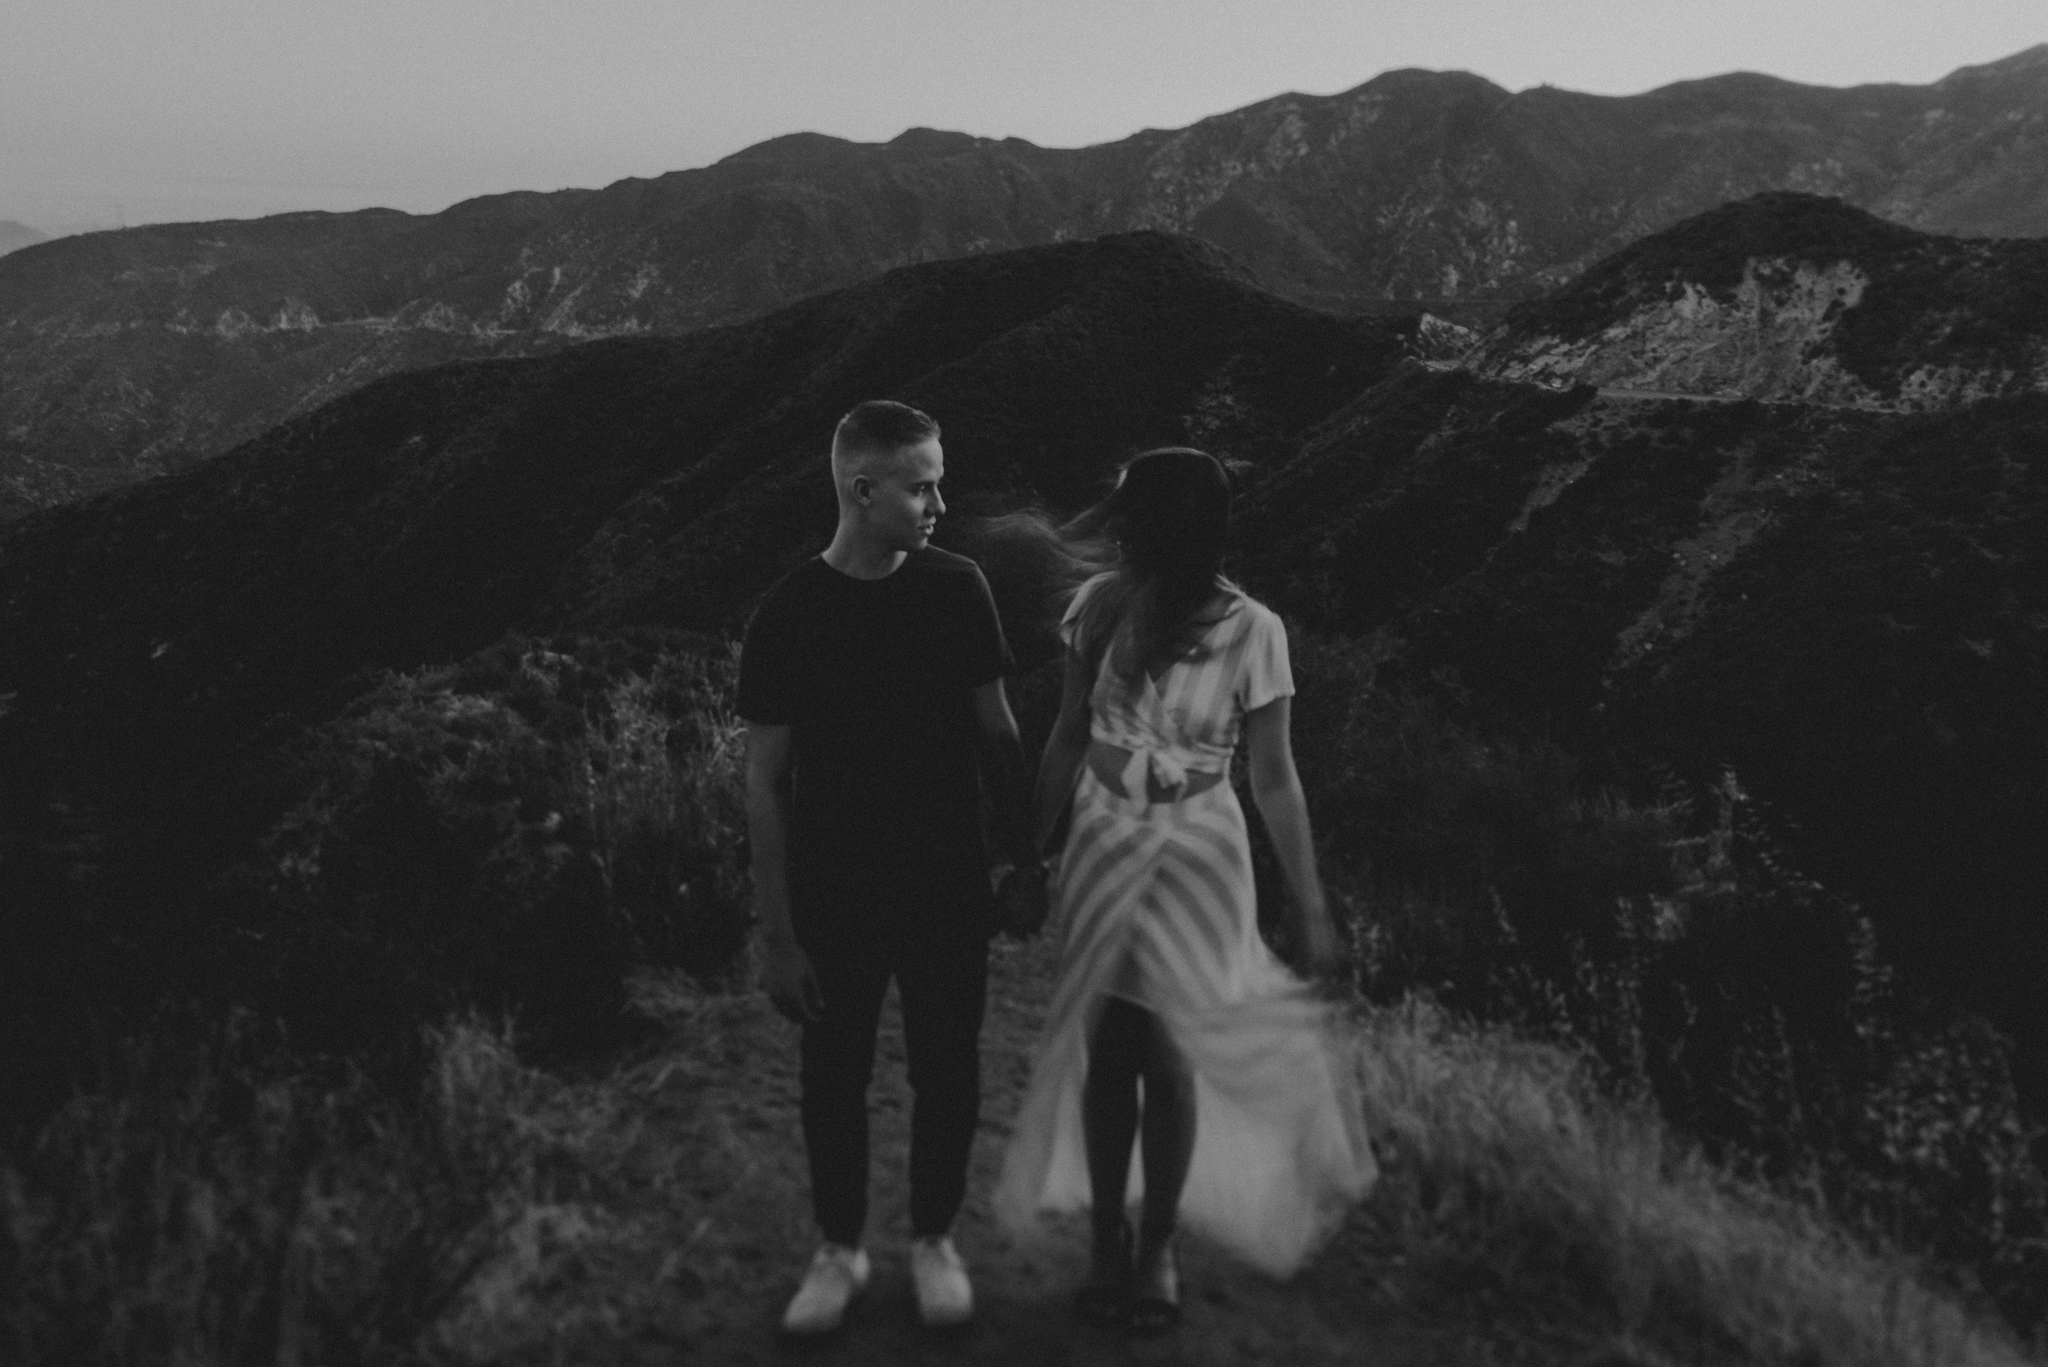 Isaiah + Taylor Photography - Los Angeles Forest Engagement Session - Laid back wedding photographer-042.jpg